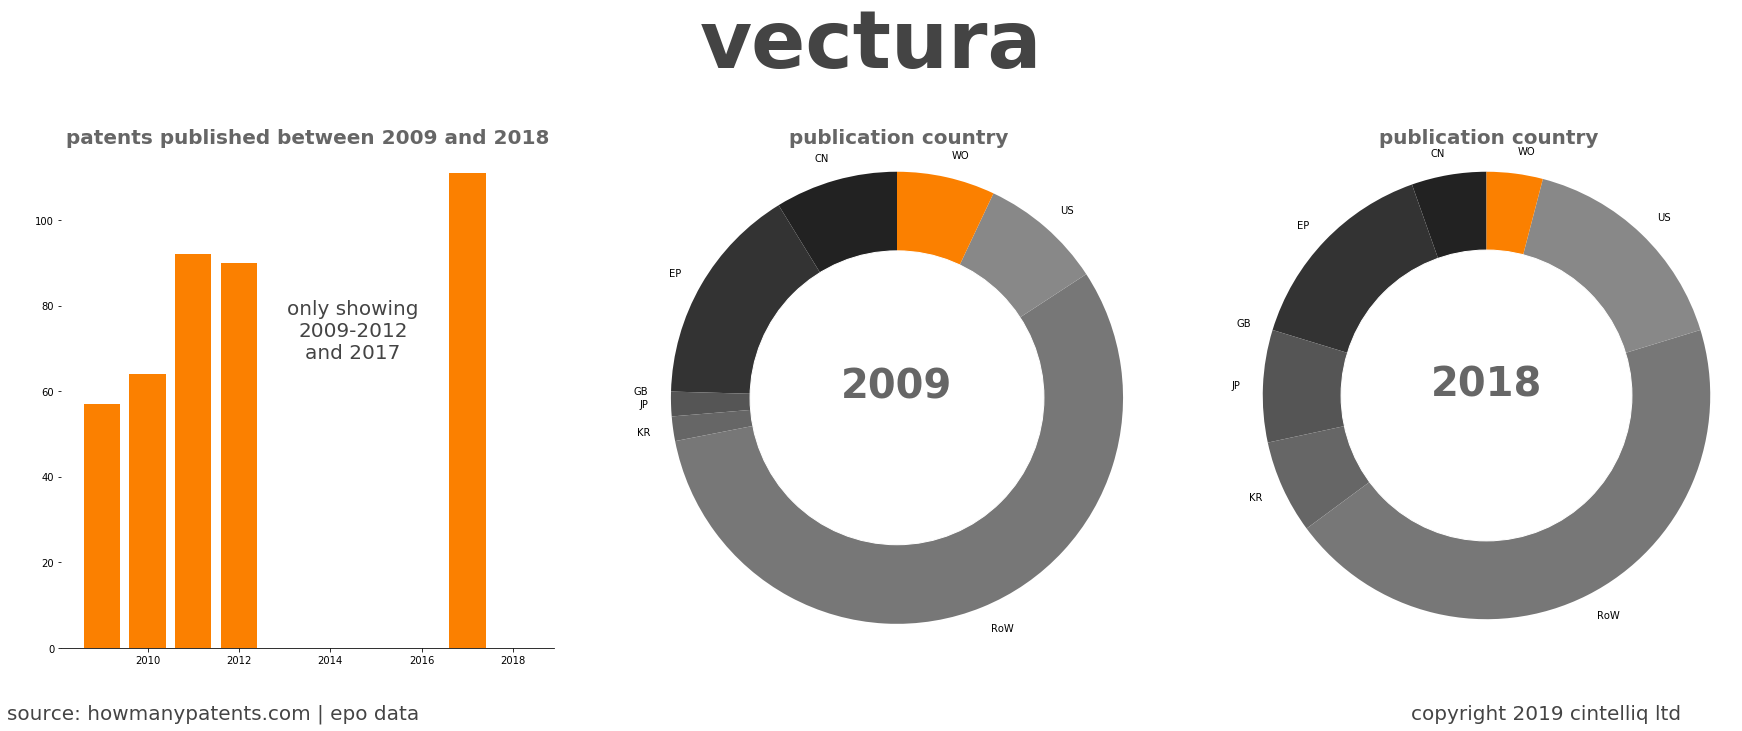 summary of patents for Vectura